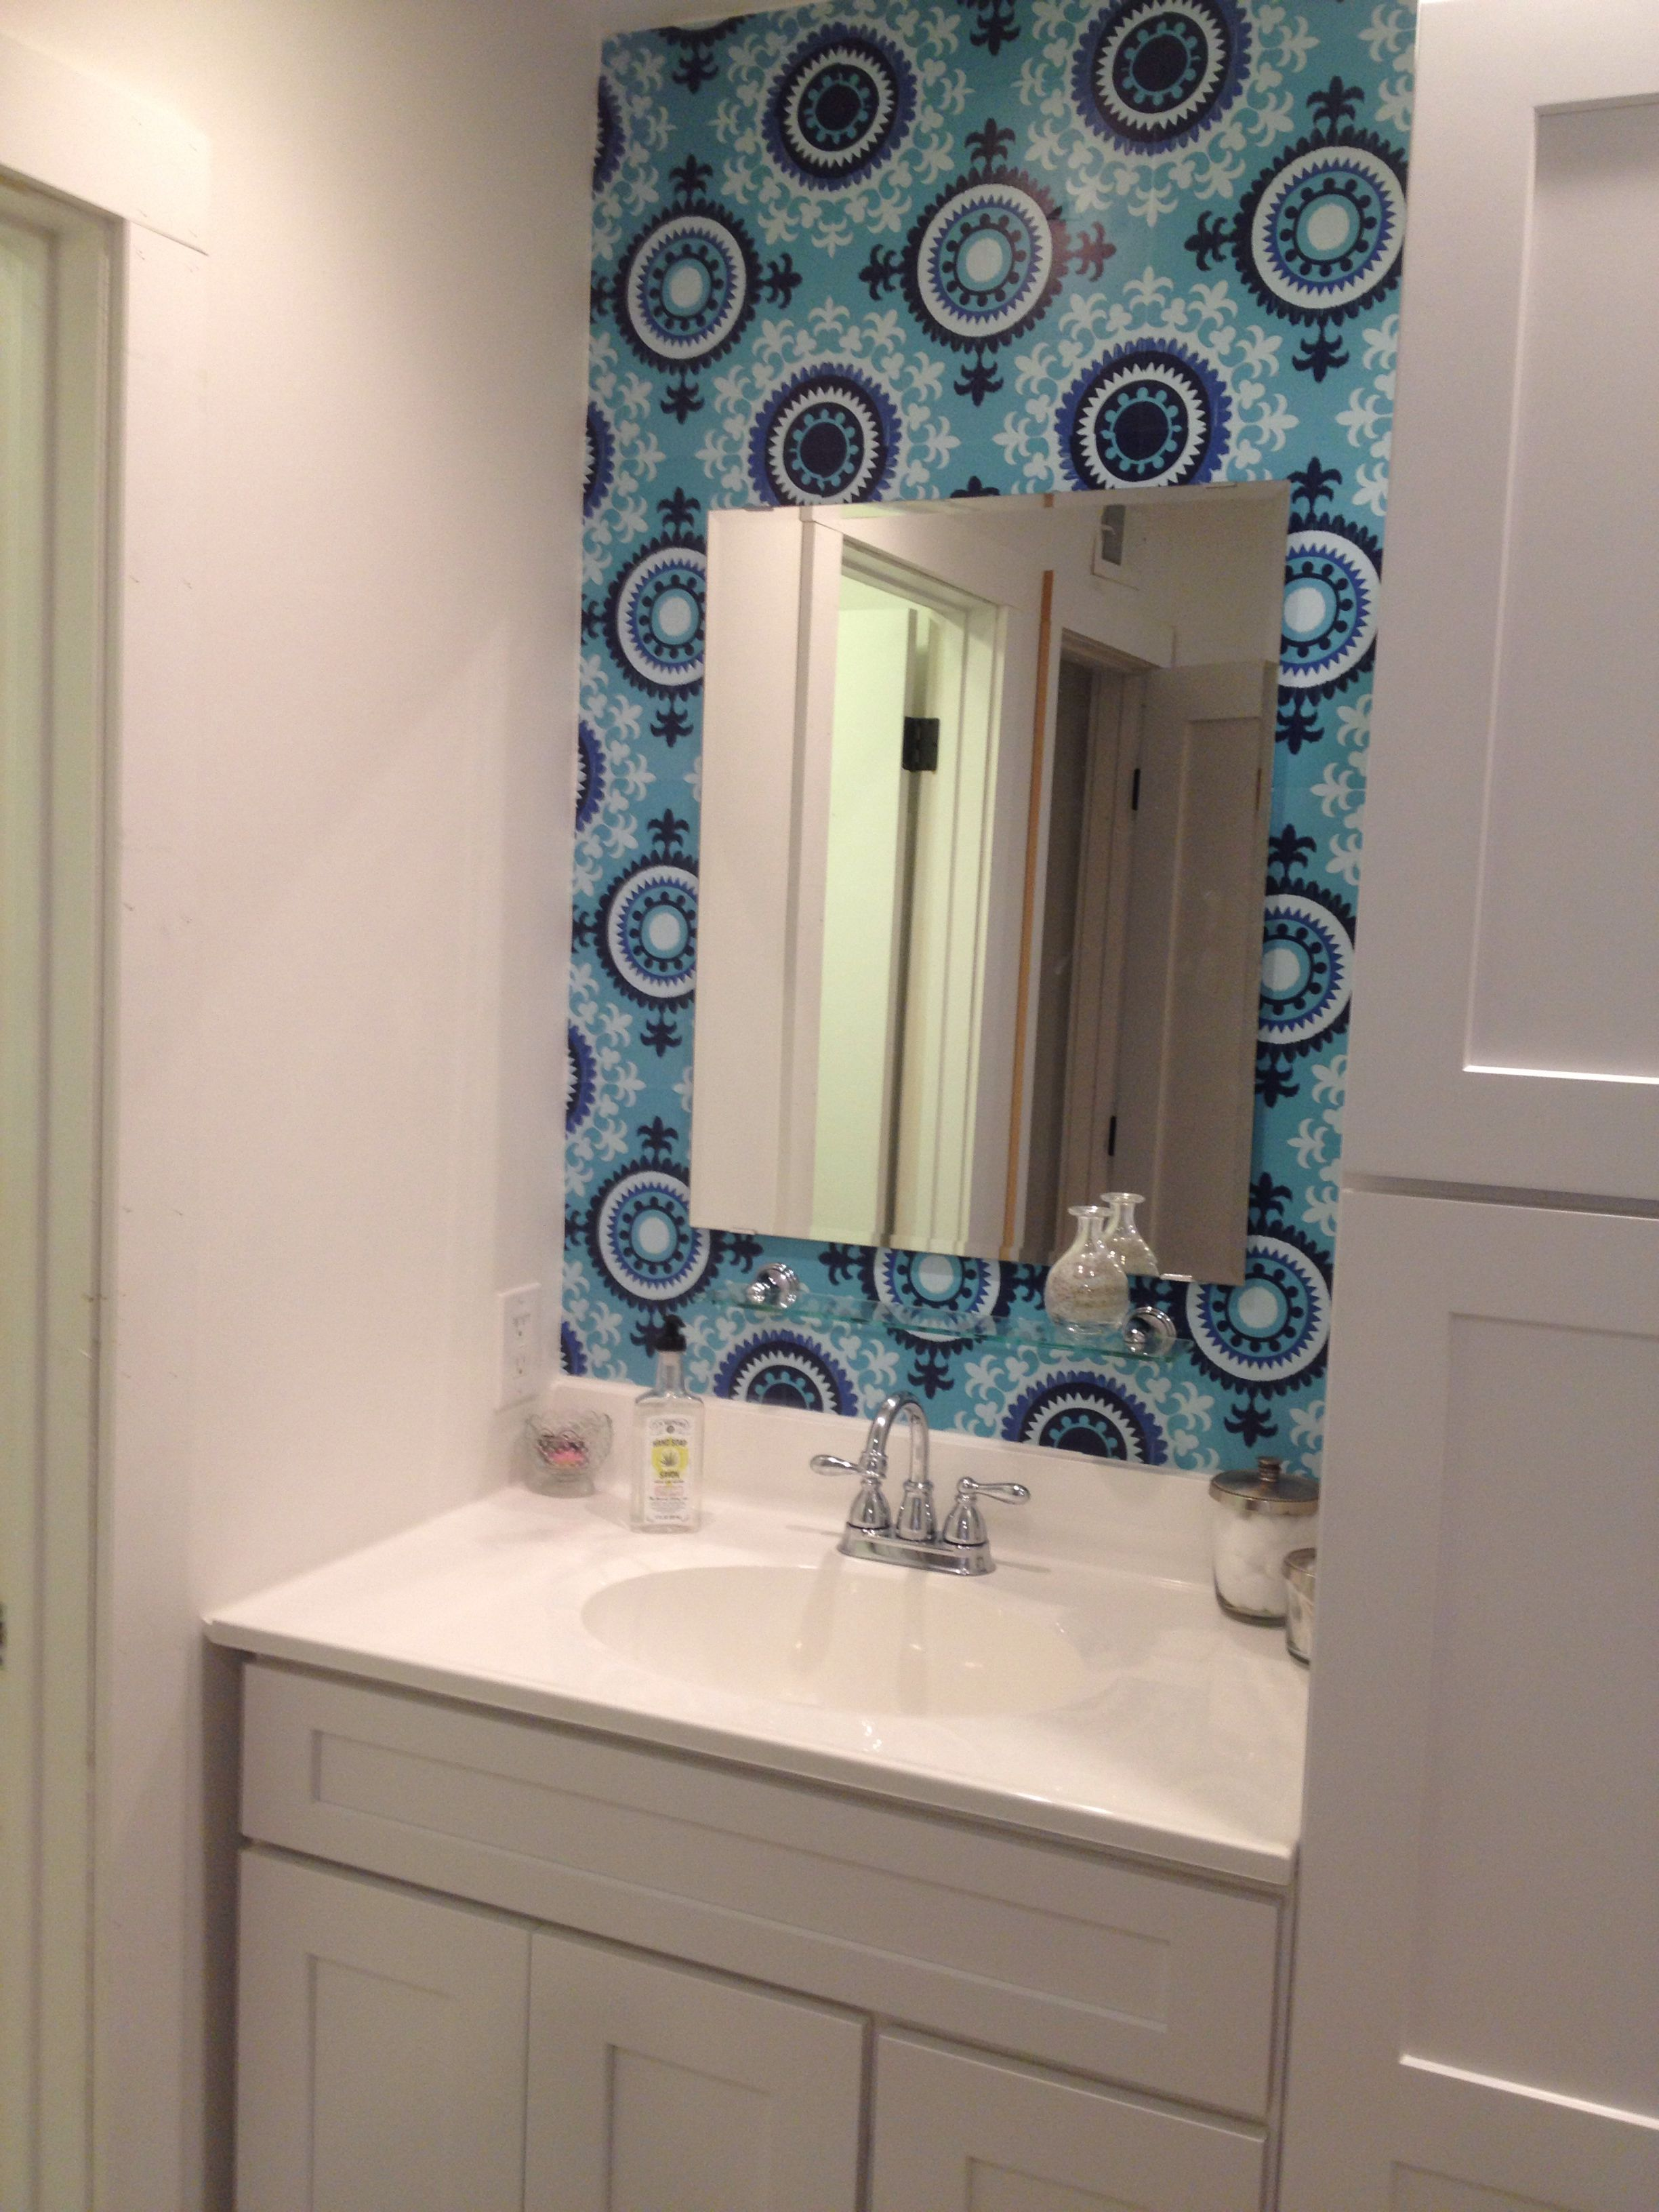 Just finishing off the bathroom with Wallpops, Malaya Blox. Easy to use!  Www.wallpops.com